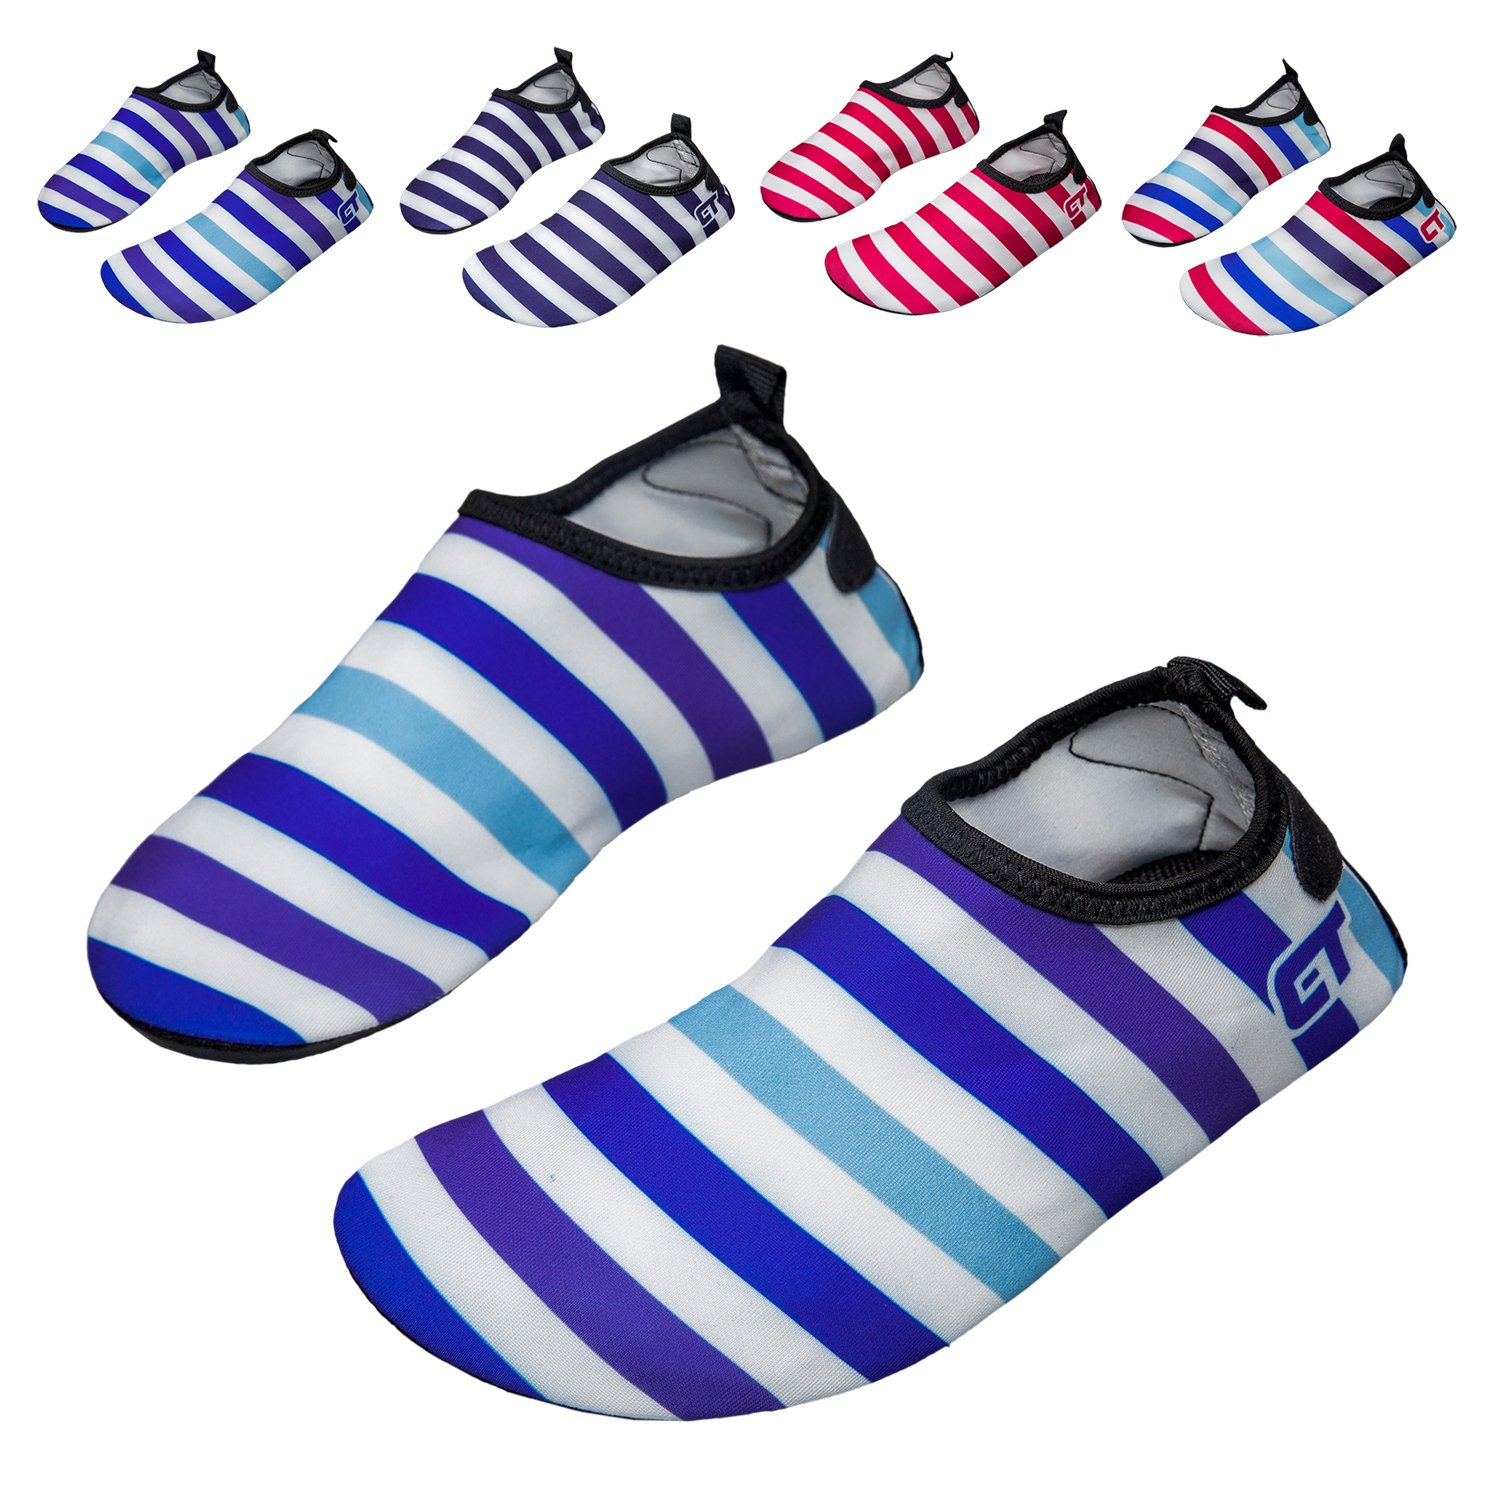 norocos Boys Lightweight Water Shoes Soft Barefoot Shoes Quick-Dry Aqua Socks Girls Beach Swimming Surf Pool Exercise